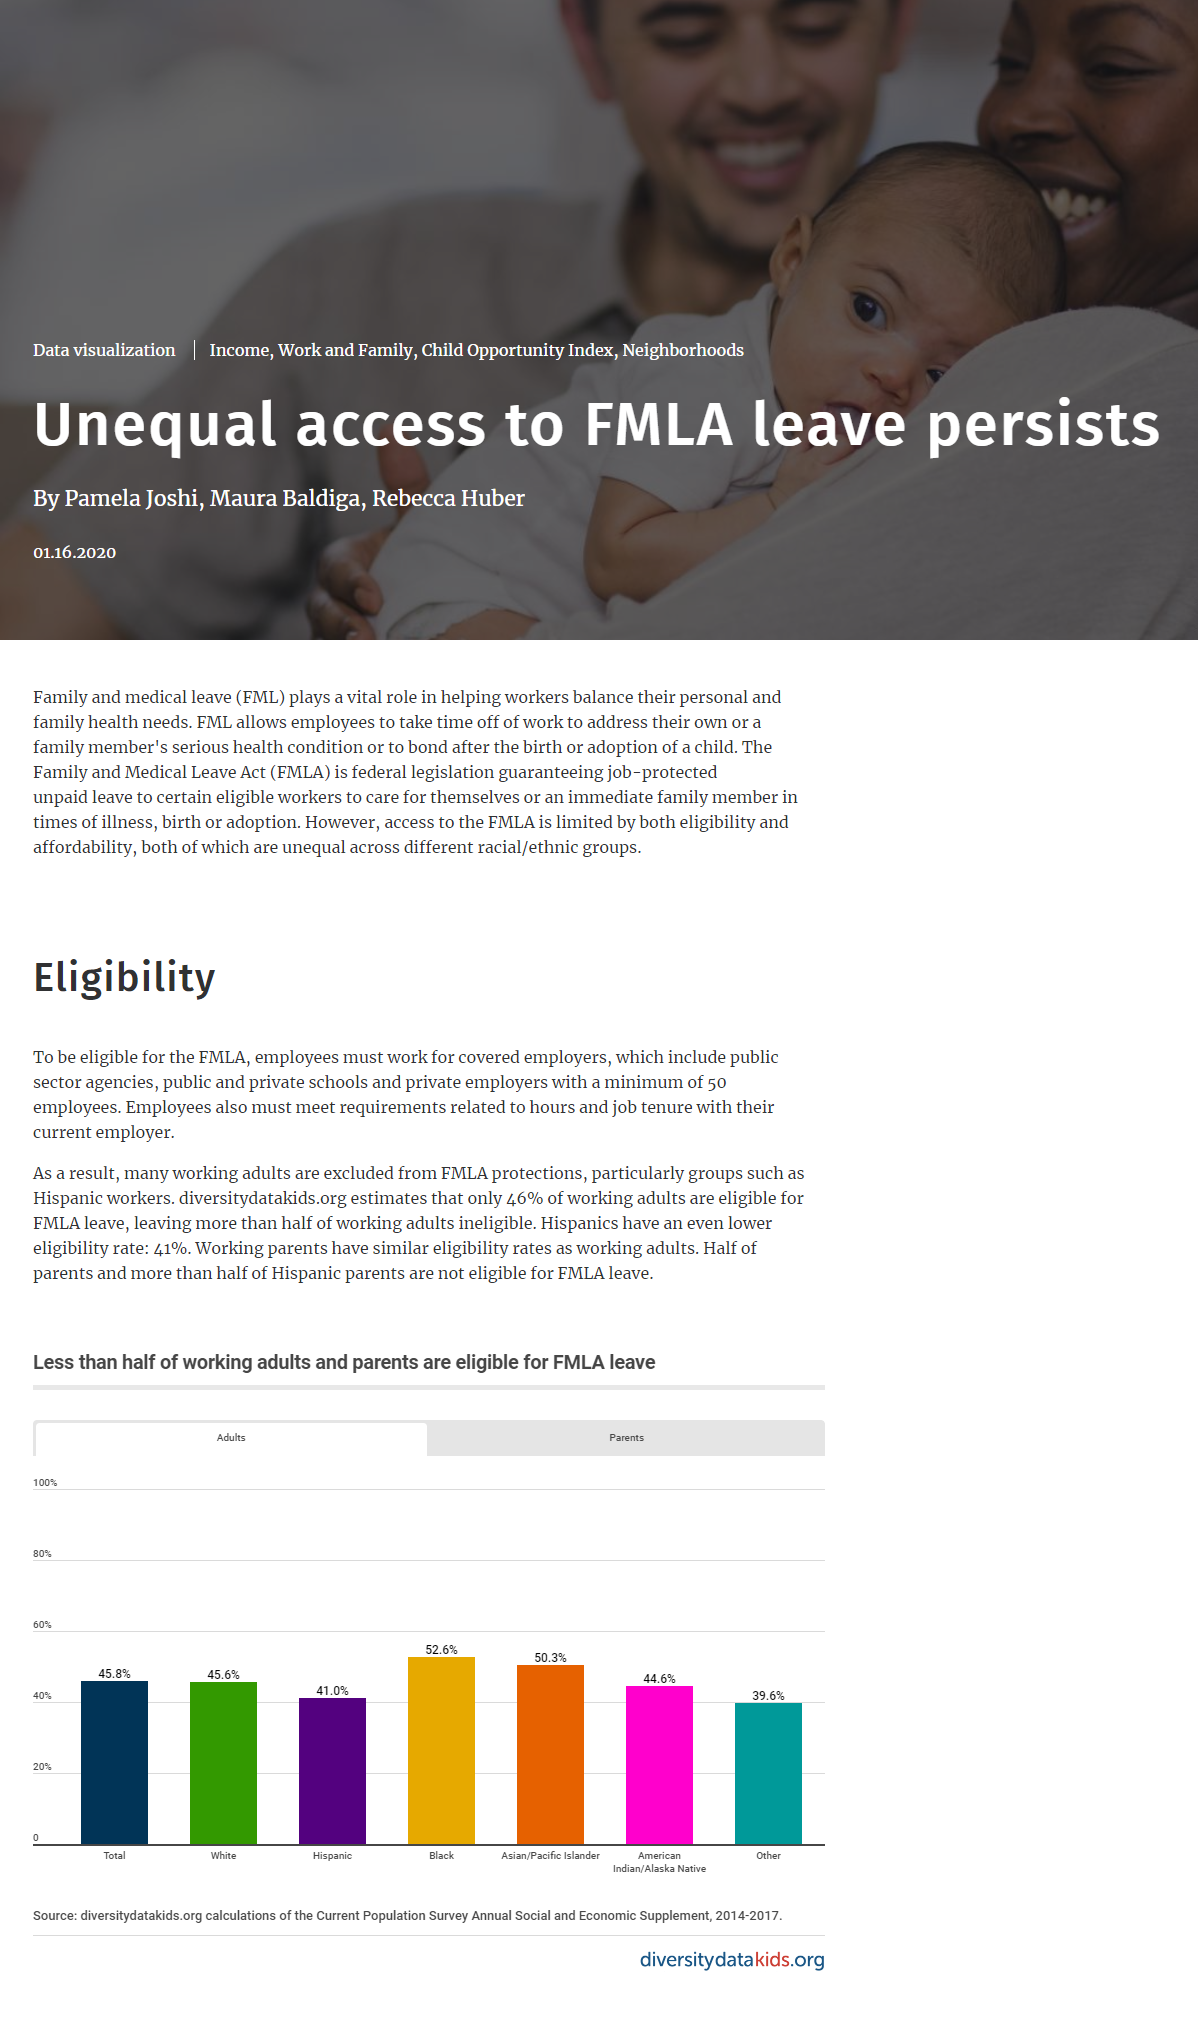 Unequal Access to FMLA Leave Persists